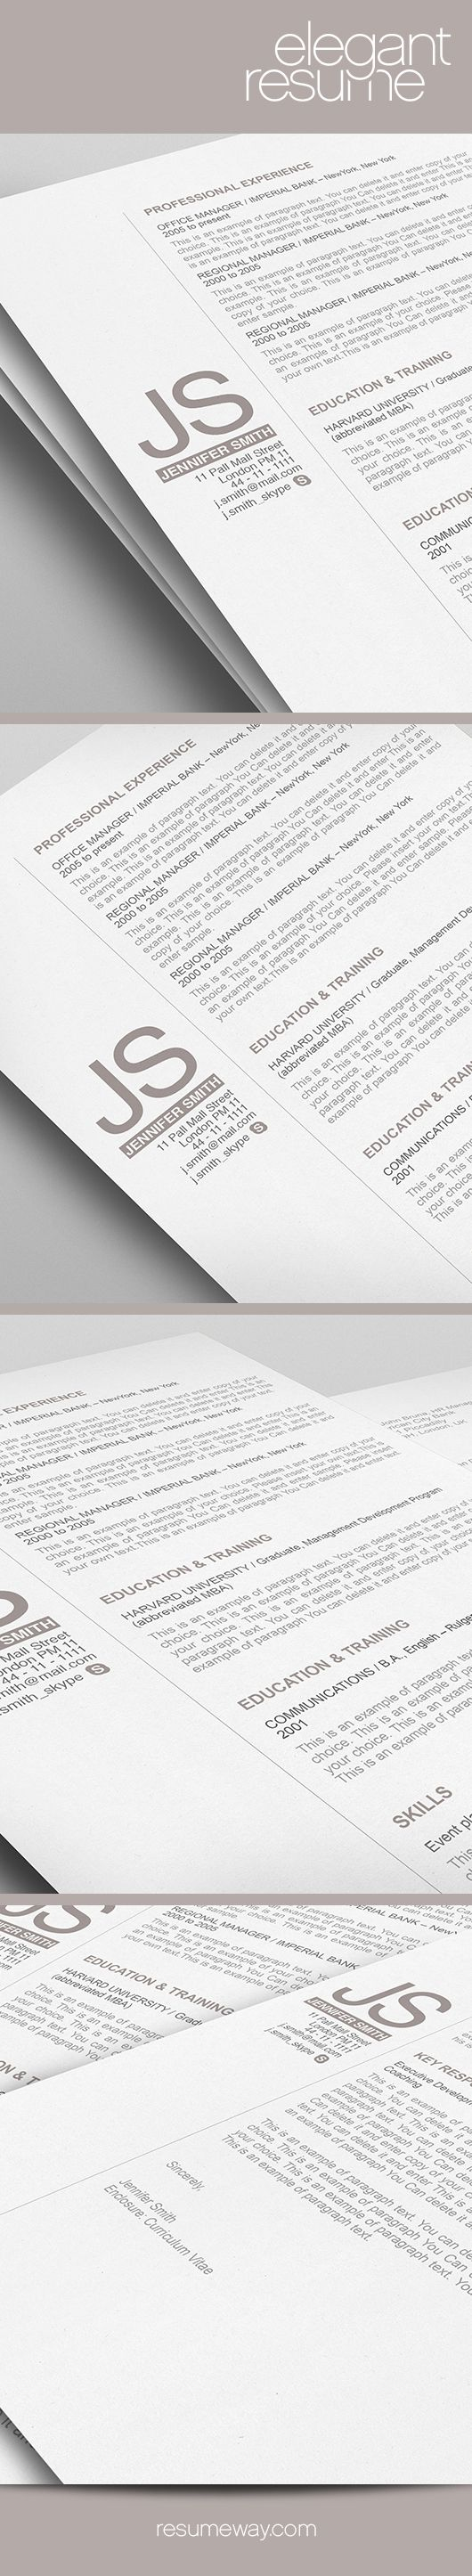 Sample Two Page Resume 71 Best Career Sear€H Images On Pinterest  Resume Templates Cv .